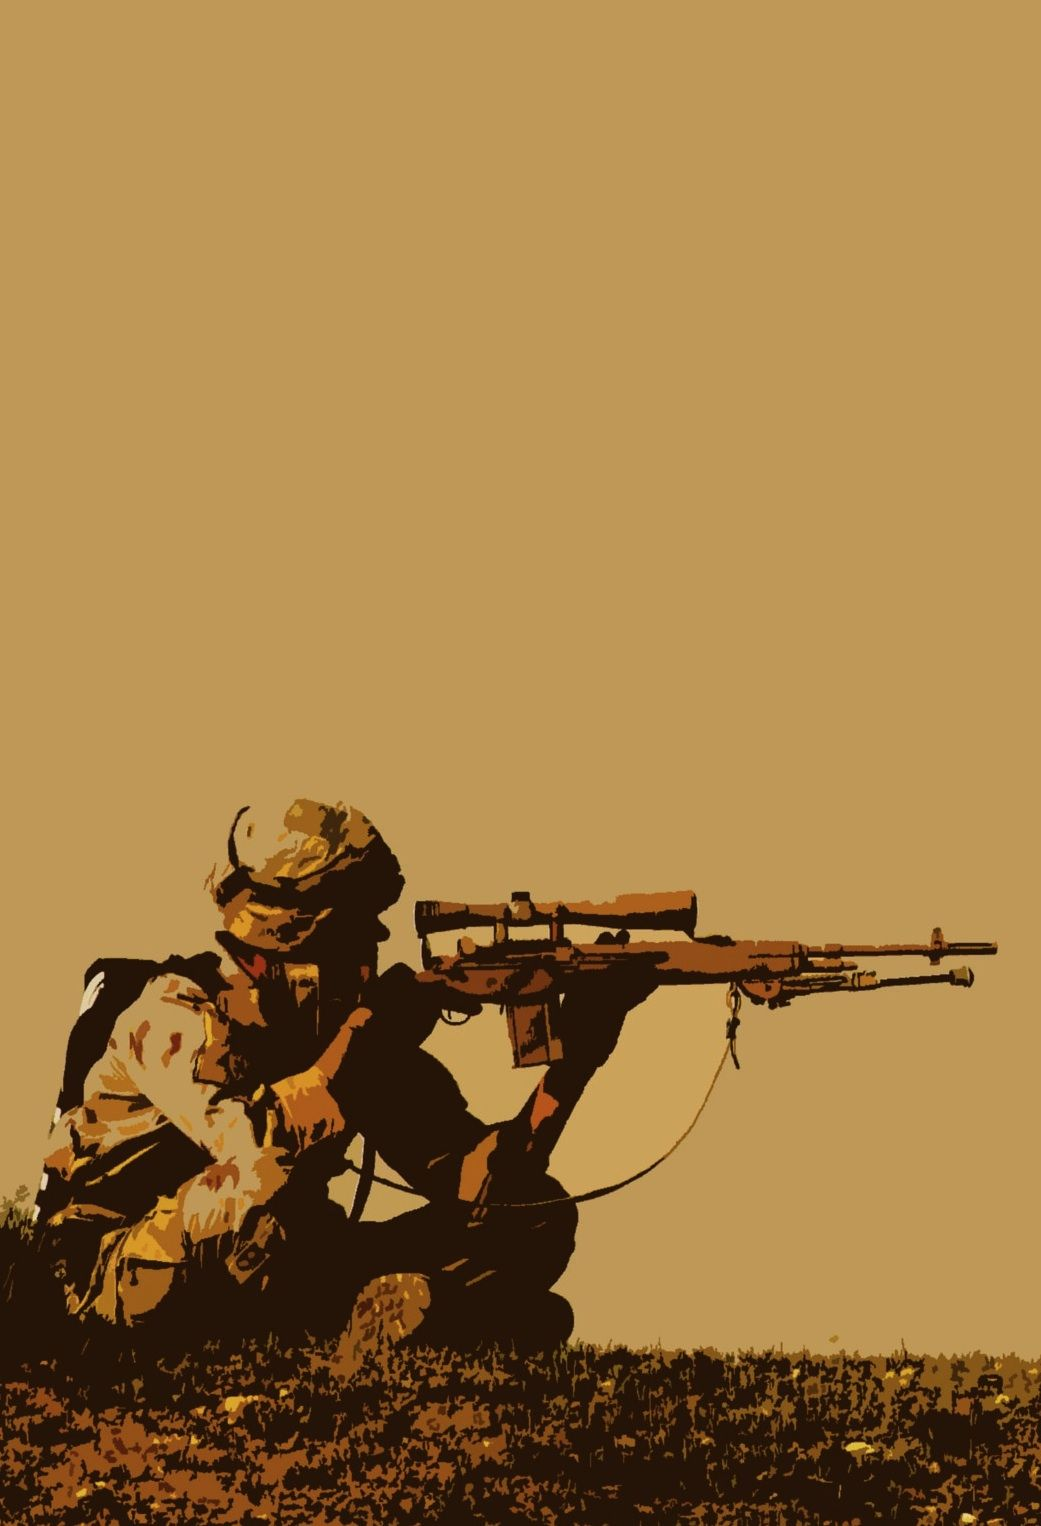 70 Parallax Ios 7 Wallpapers For Iphone 5 Military Wallpaper Army Wallpaper Ios 7 Wallpaper